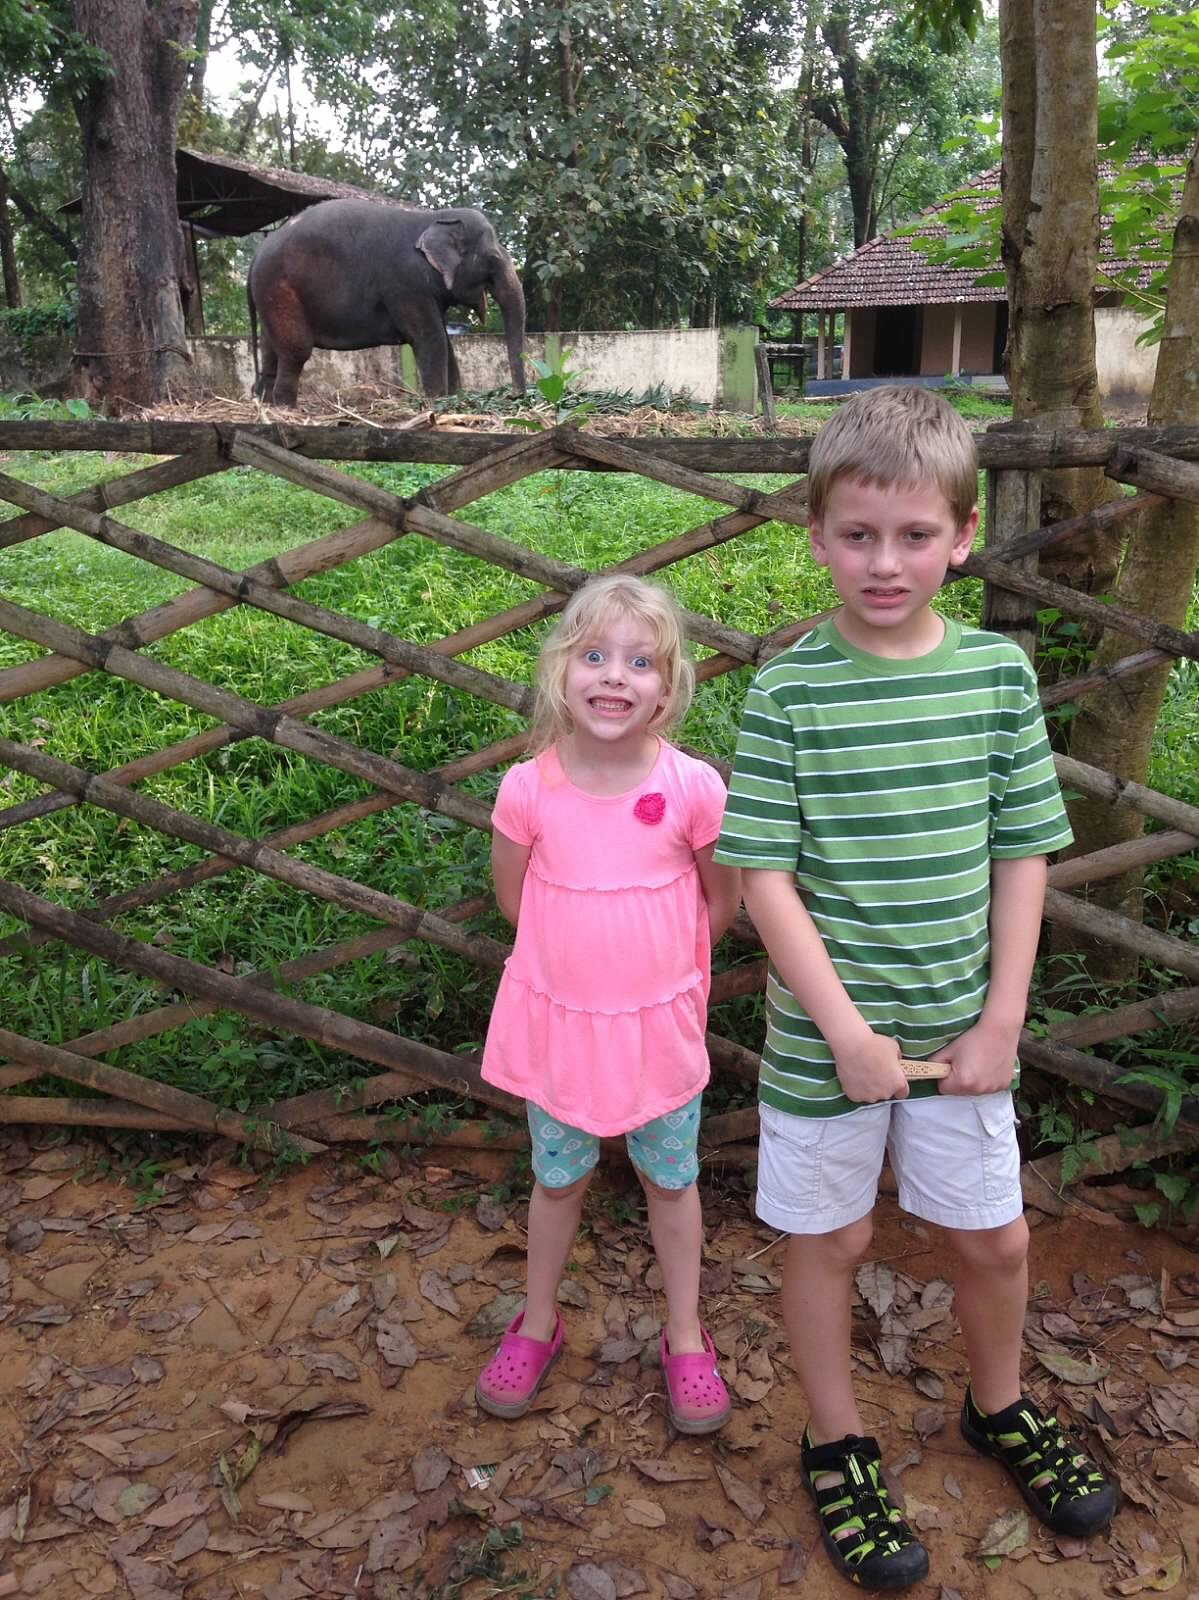 kids at elephanat sanctuary.jpg